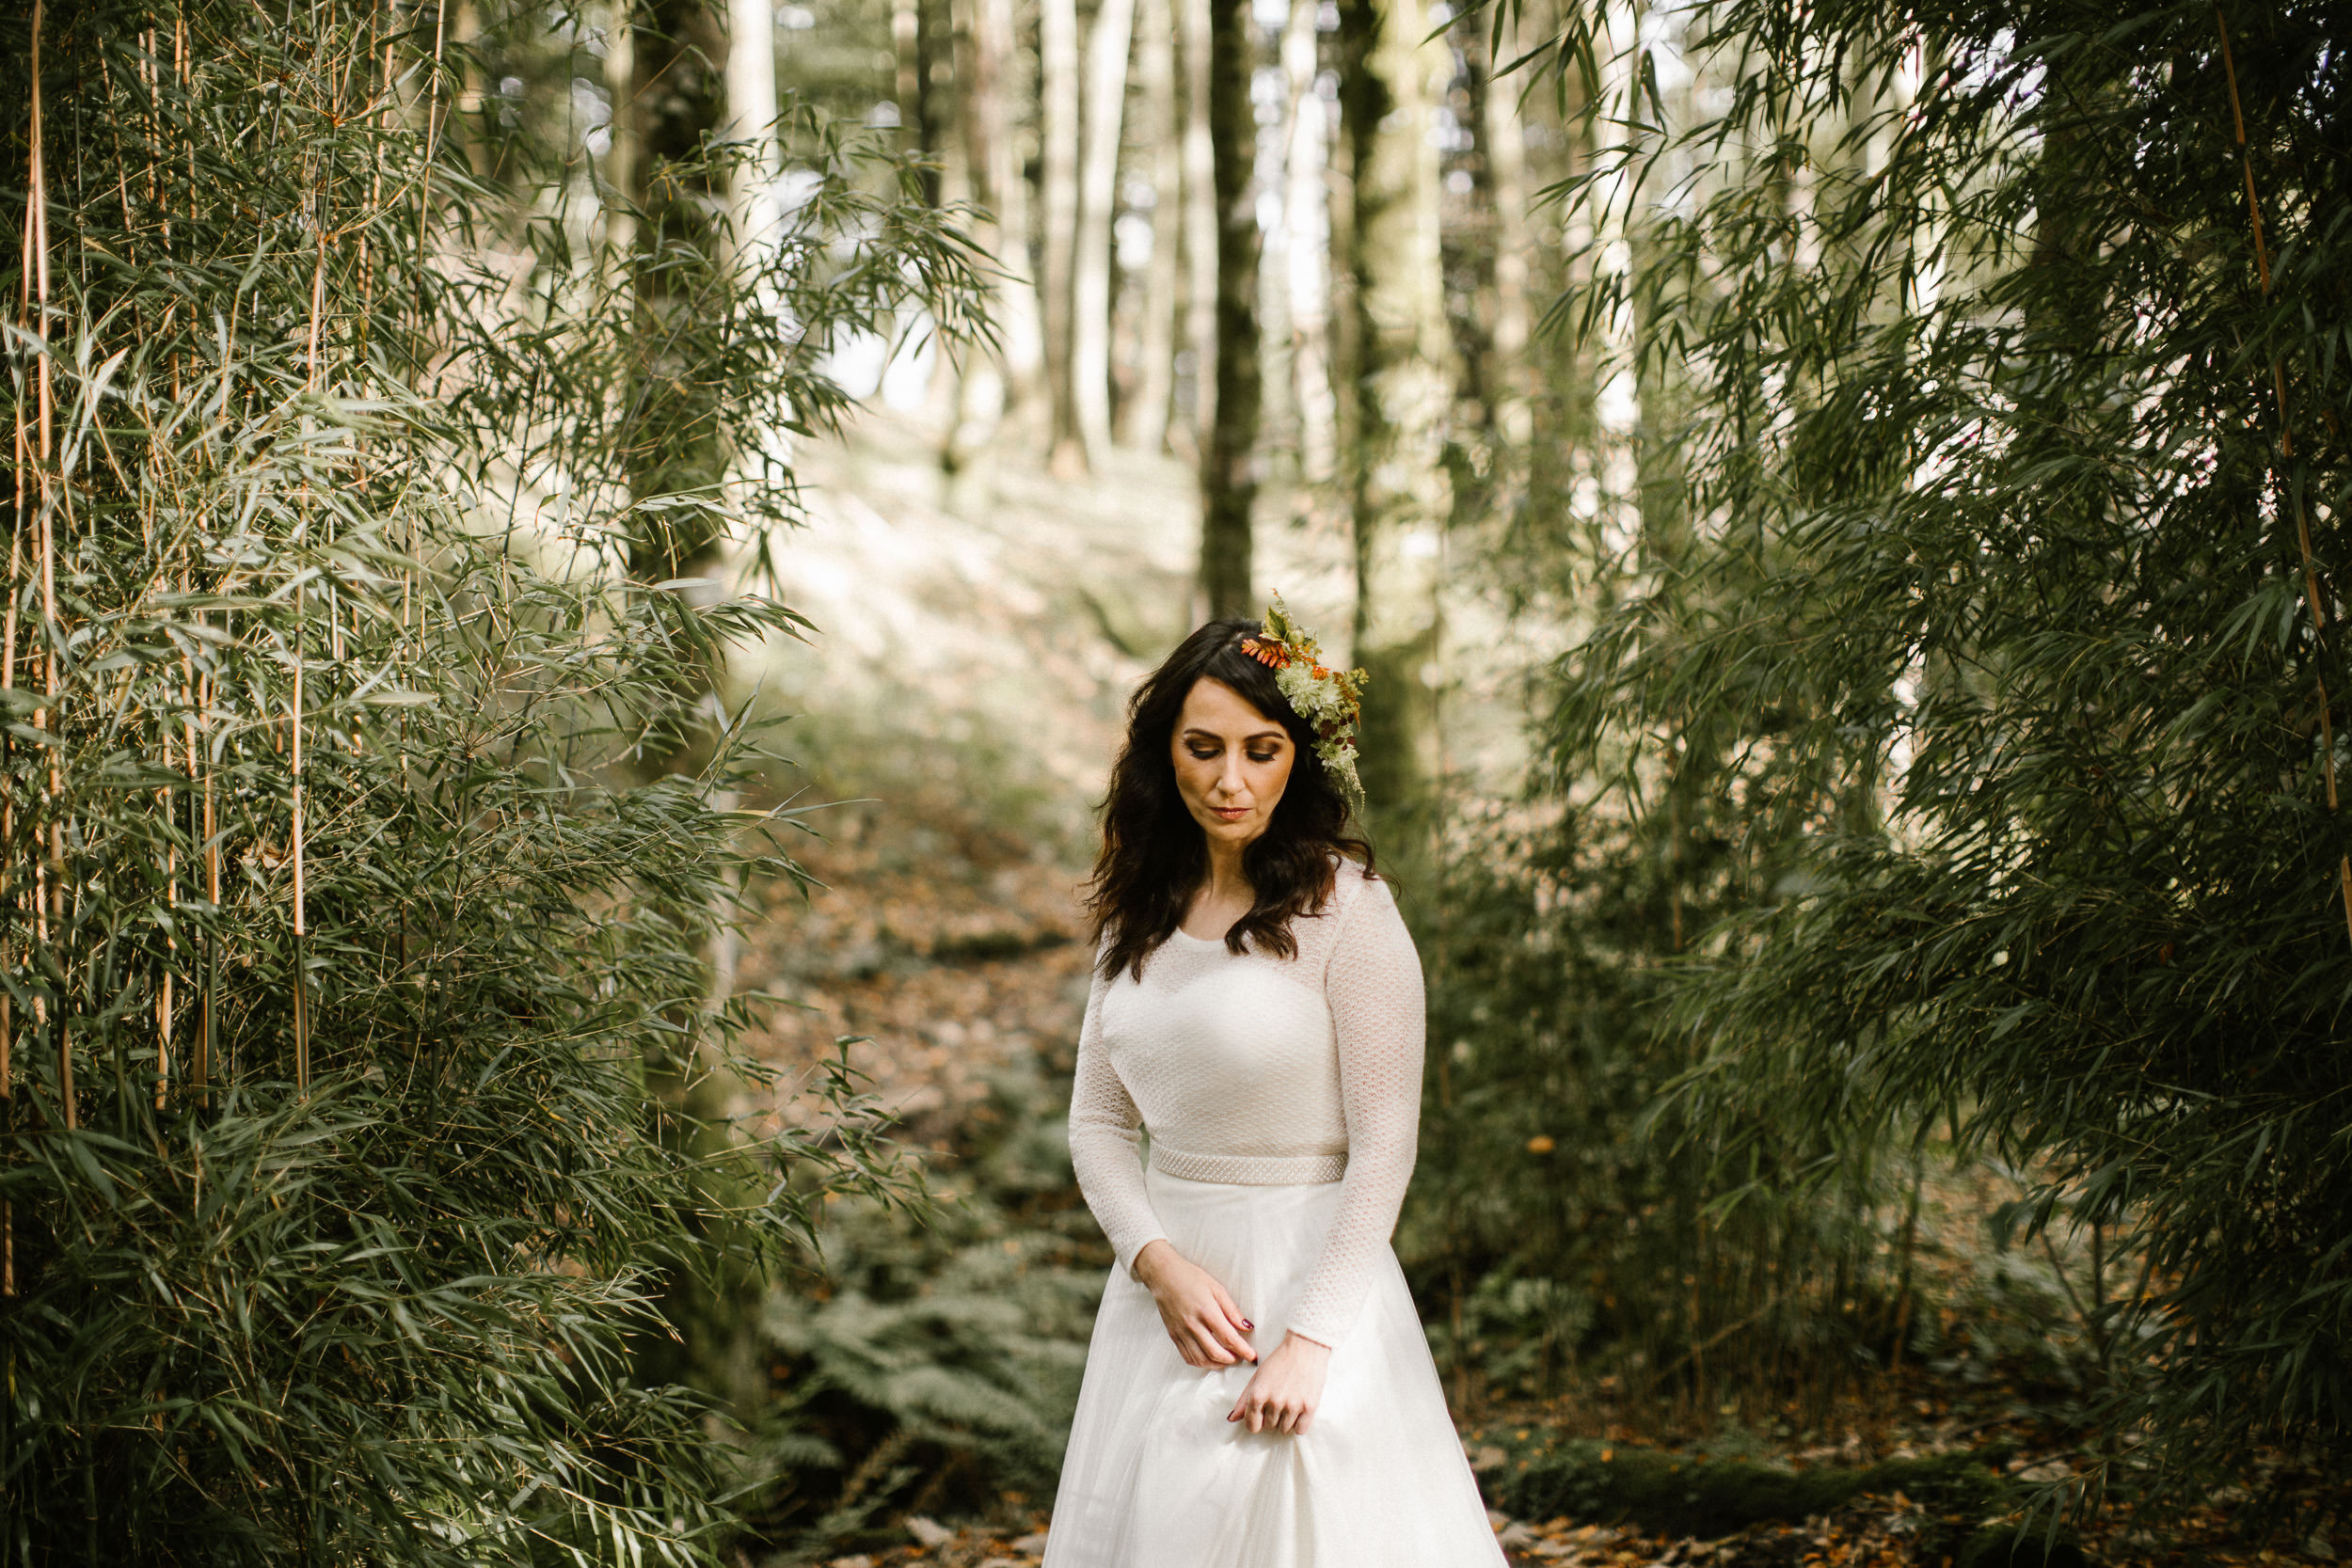 clairebyrnephotography-styled-shoot-huntingbrook-gardens-inspiration-weddings-woods-forest-23.jpg